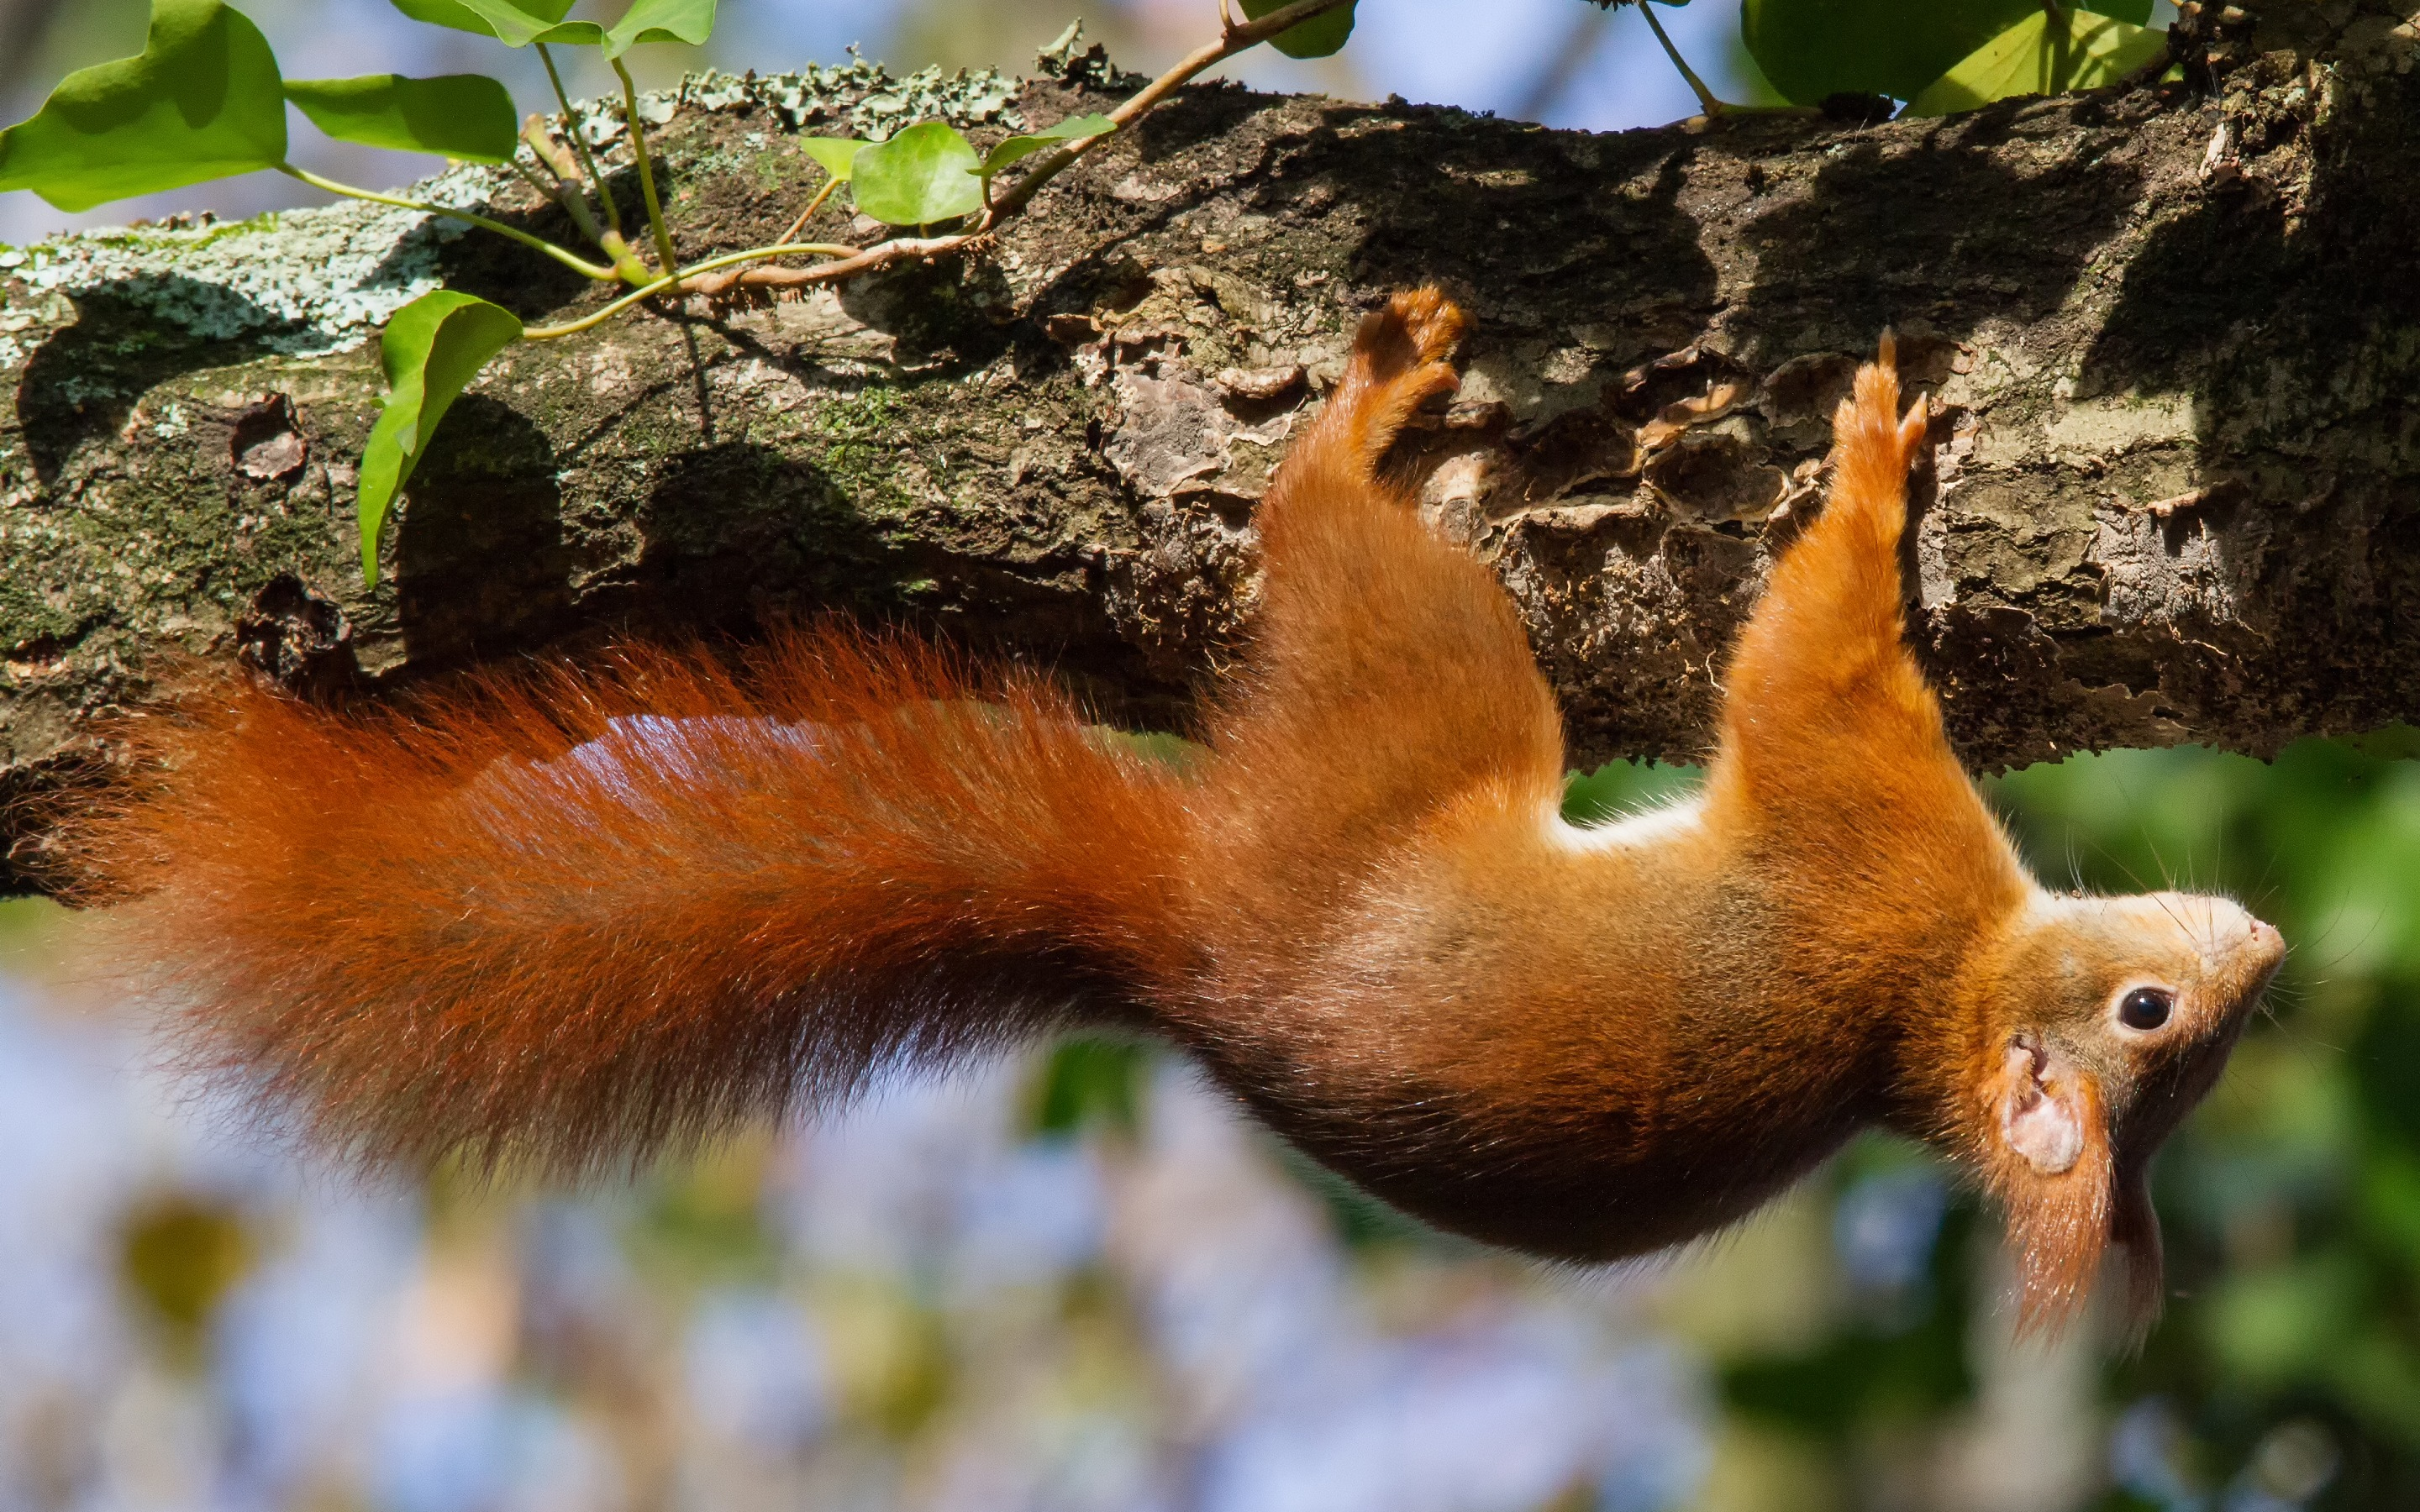 130650 download wallpaper Animals, Squirrel, Wood, Tree, Climb, Upside Down screensavers and pictures for free